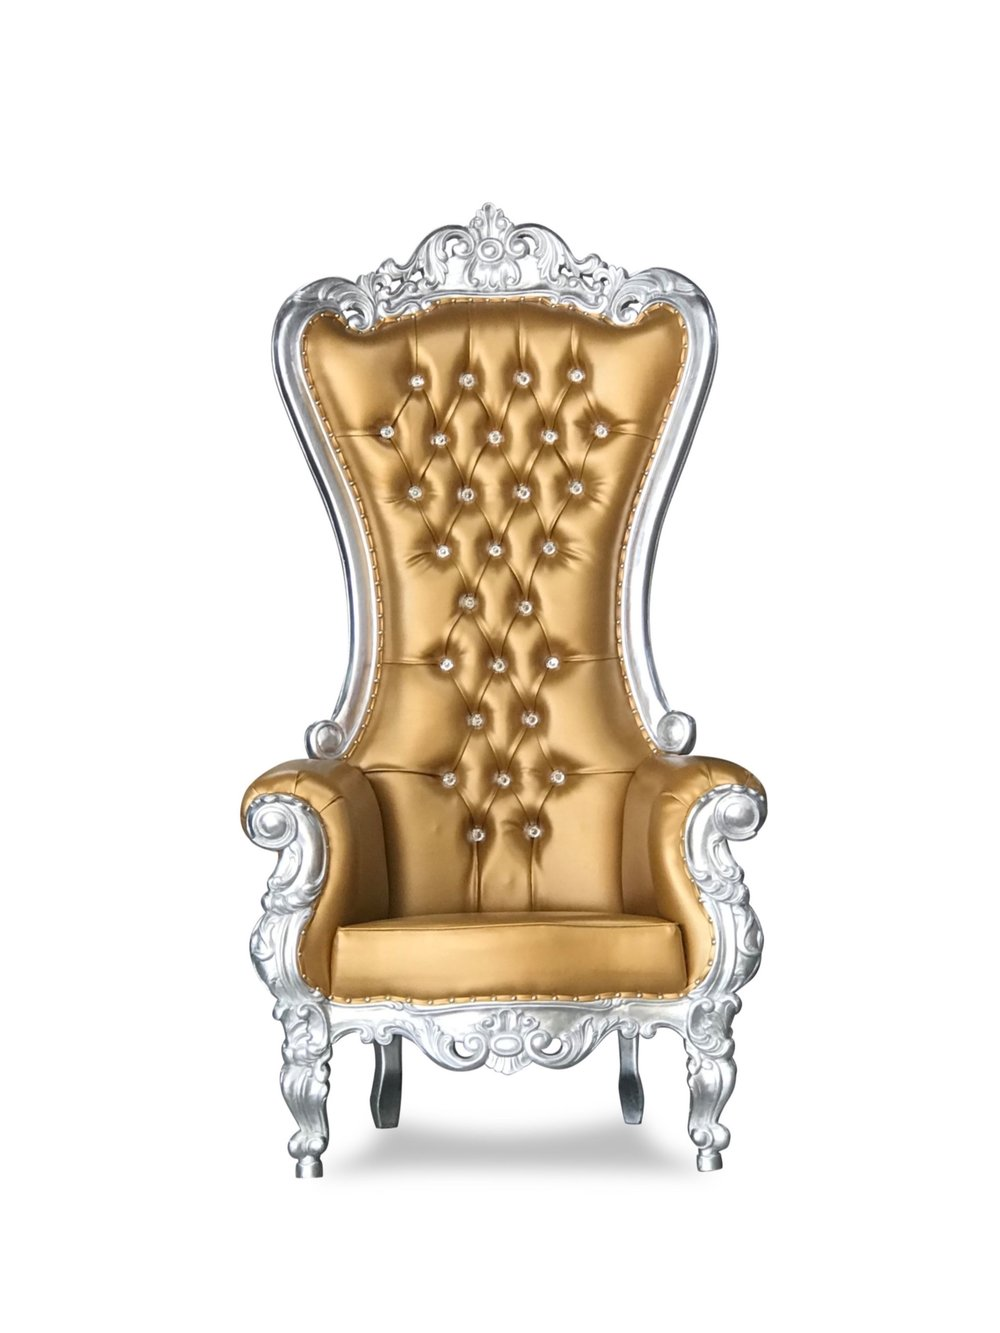 Gold and Silver Throne Chair